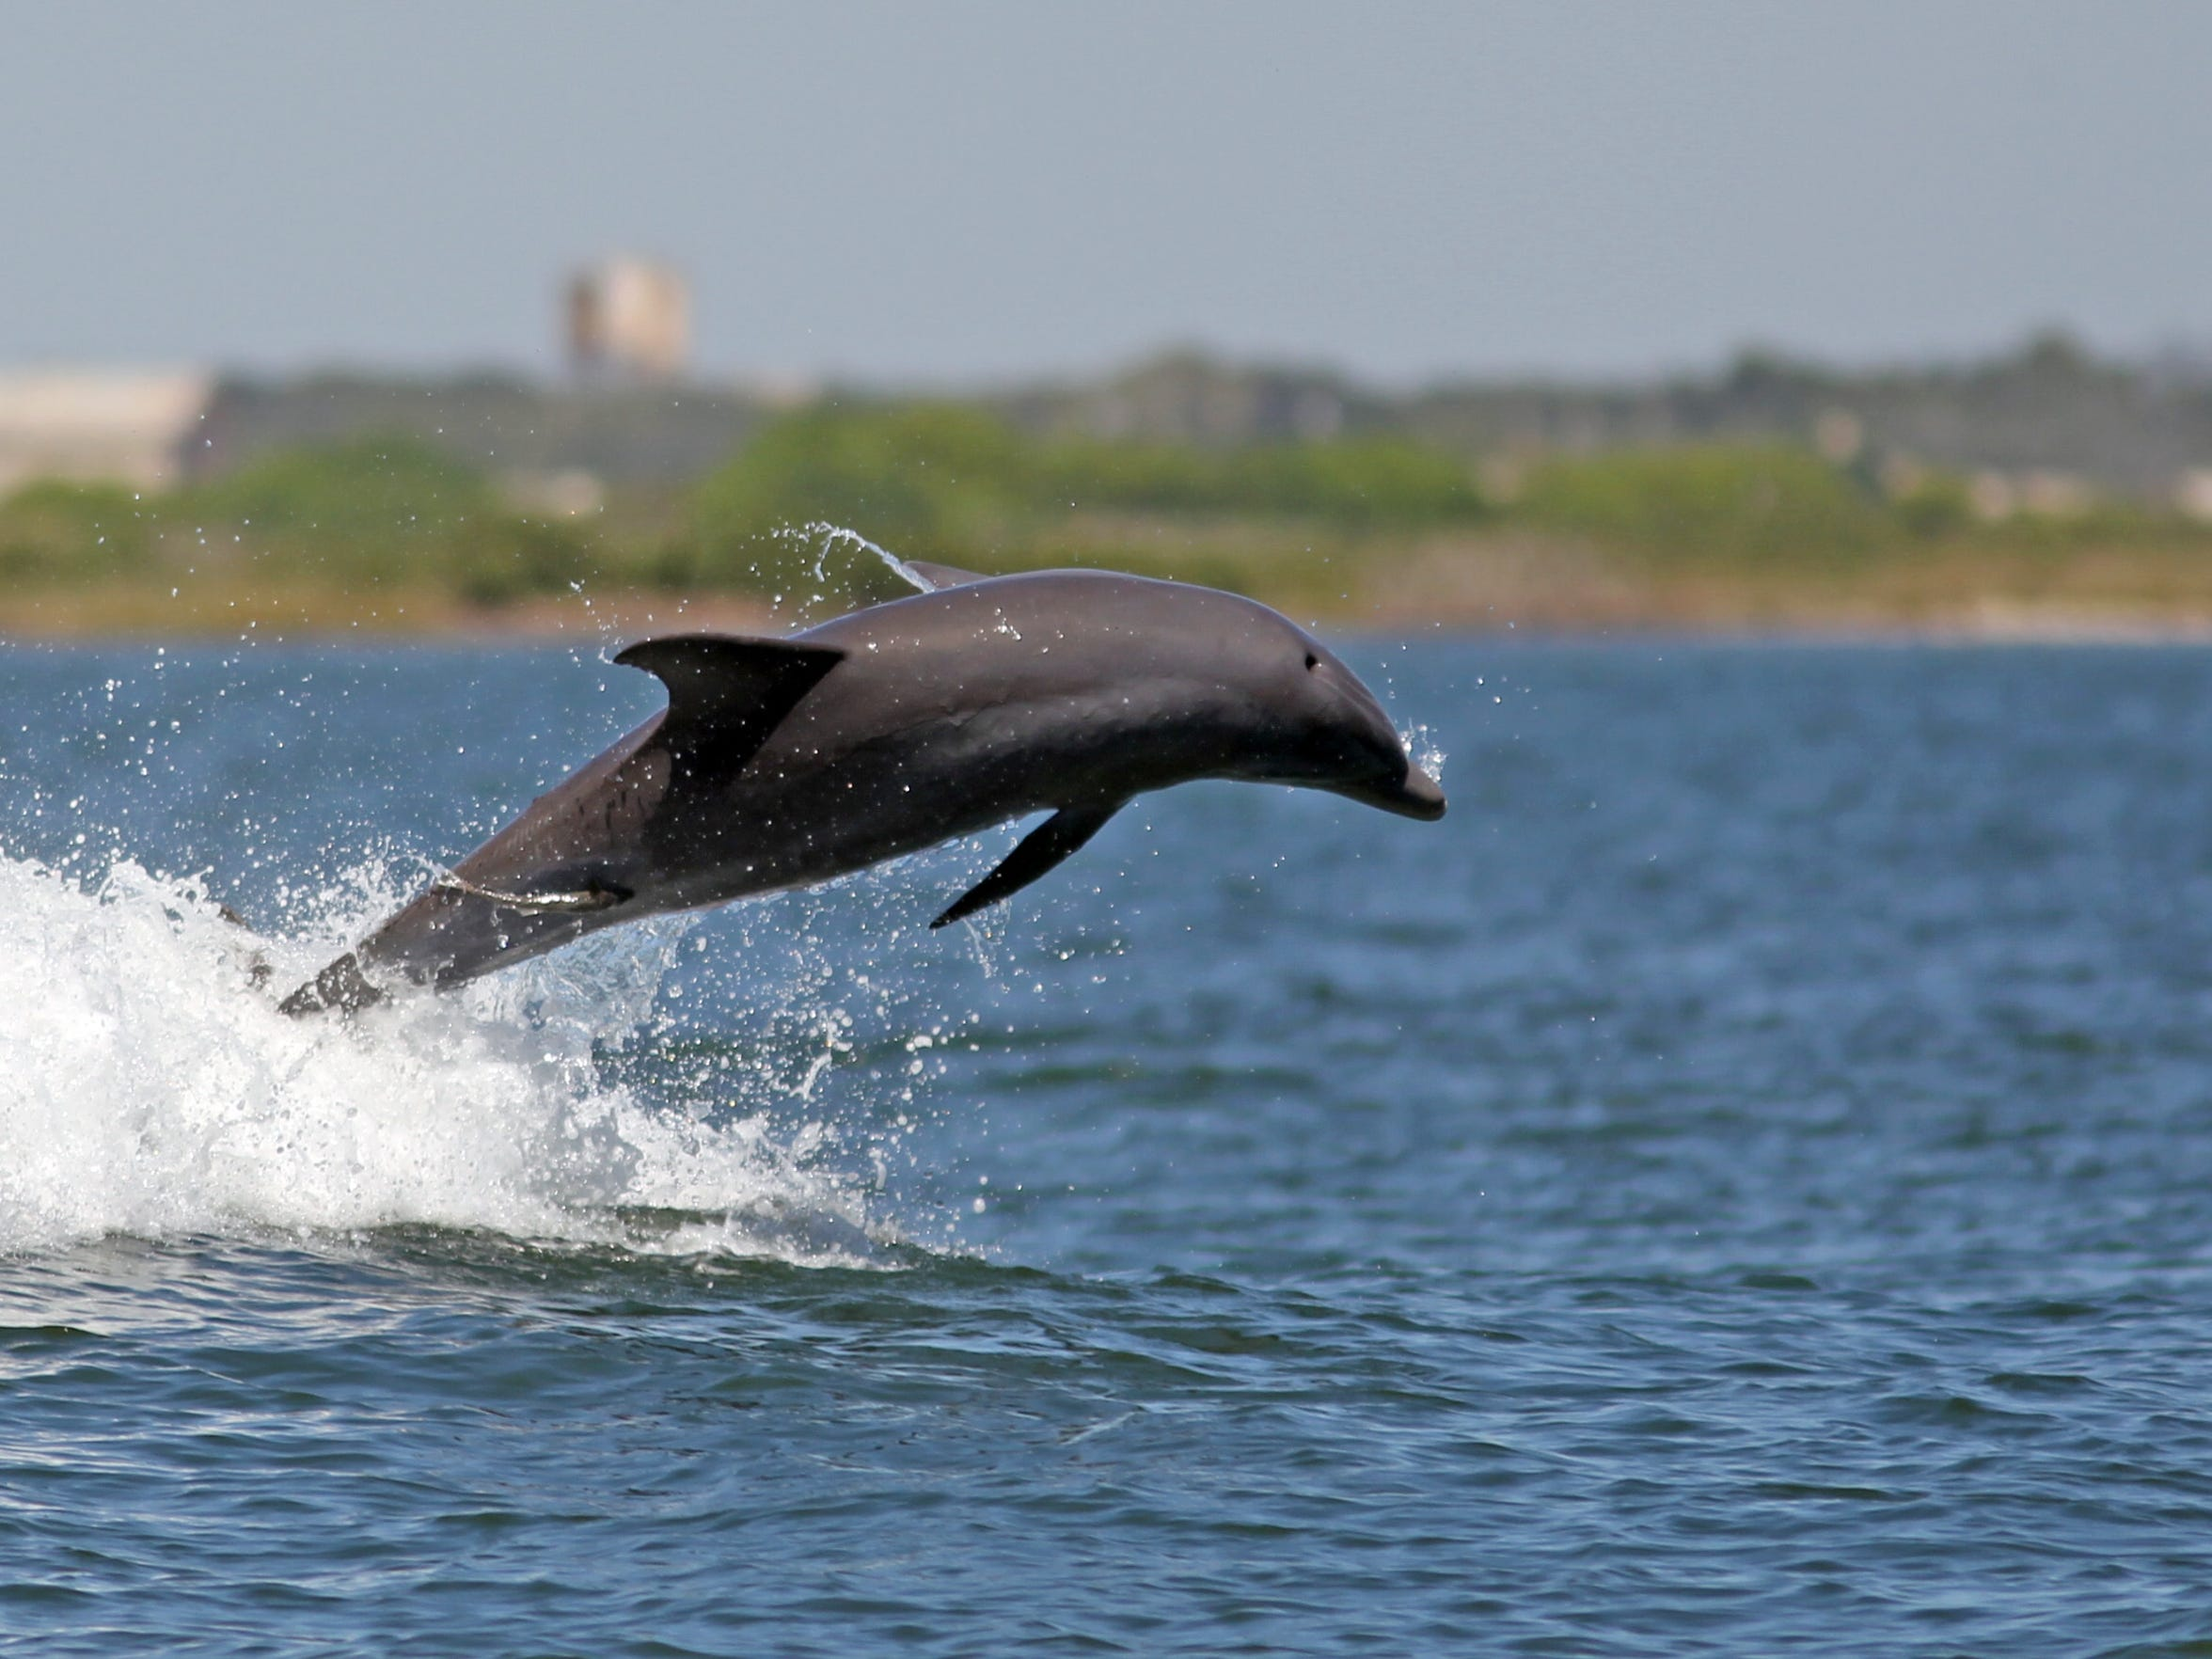 The dolphin display was a pleasant distraction during a boat ride to Dagger Island.